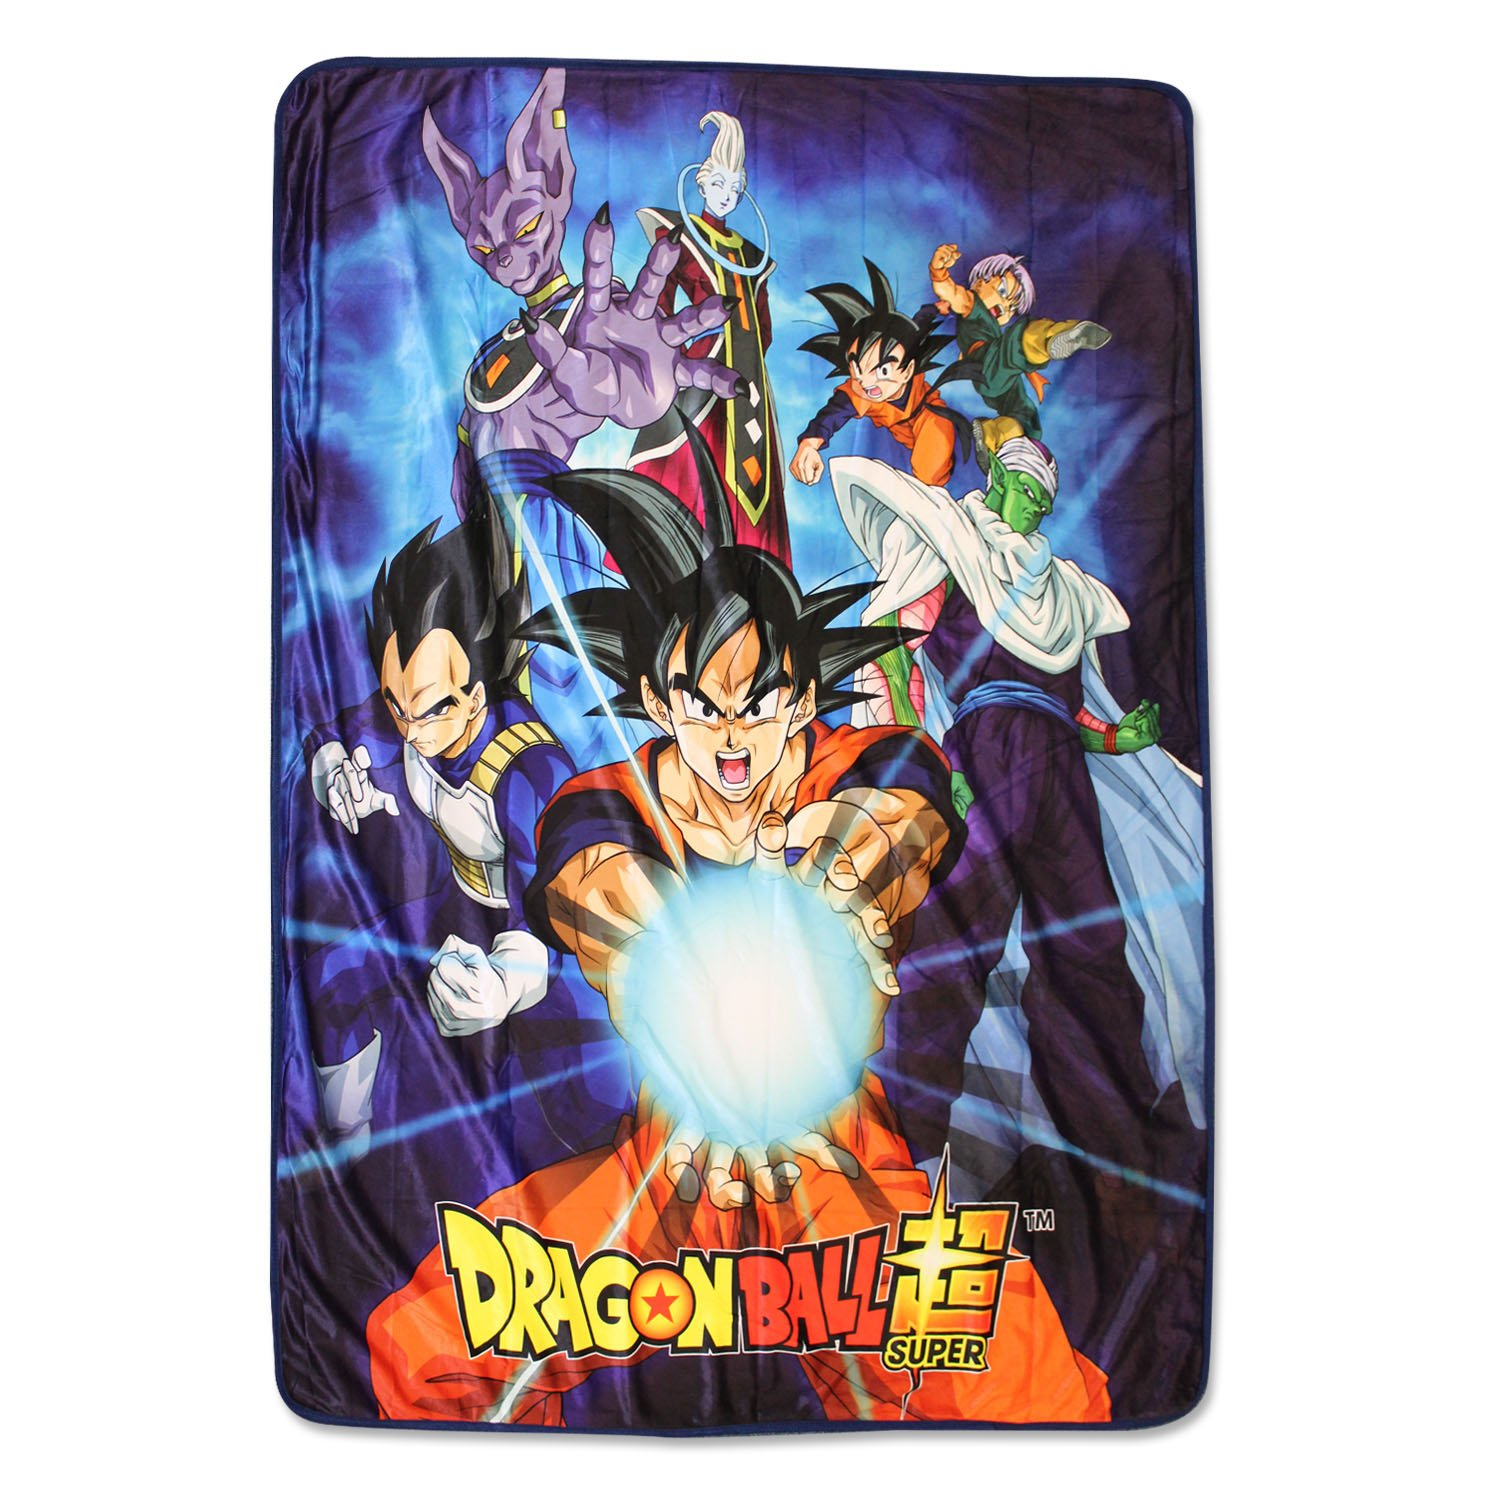 Dragon Ball Z Super Saiyan Group 6 Throw Blanket, Multi-Colored, One Size